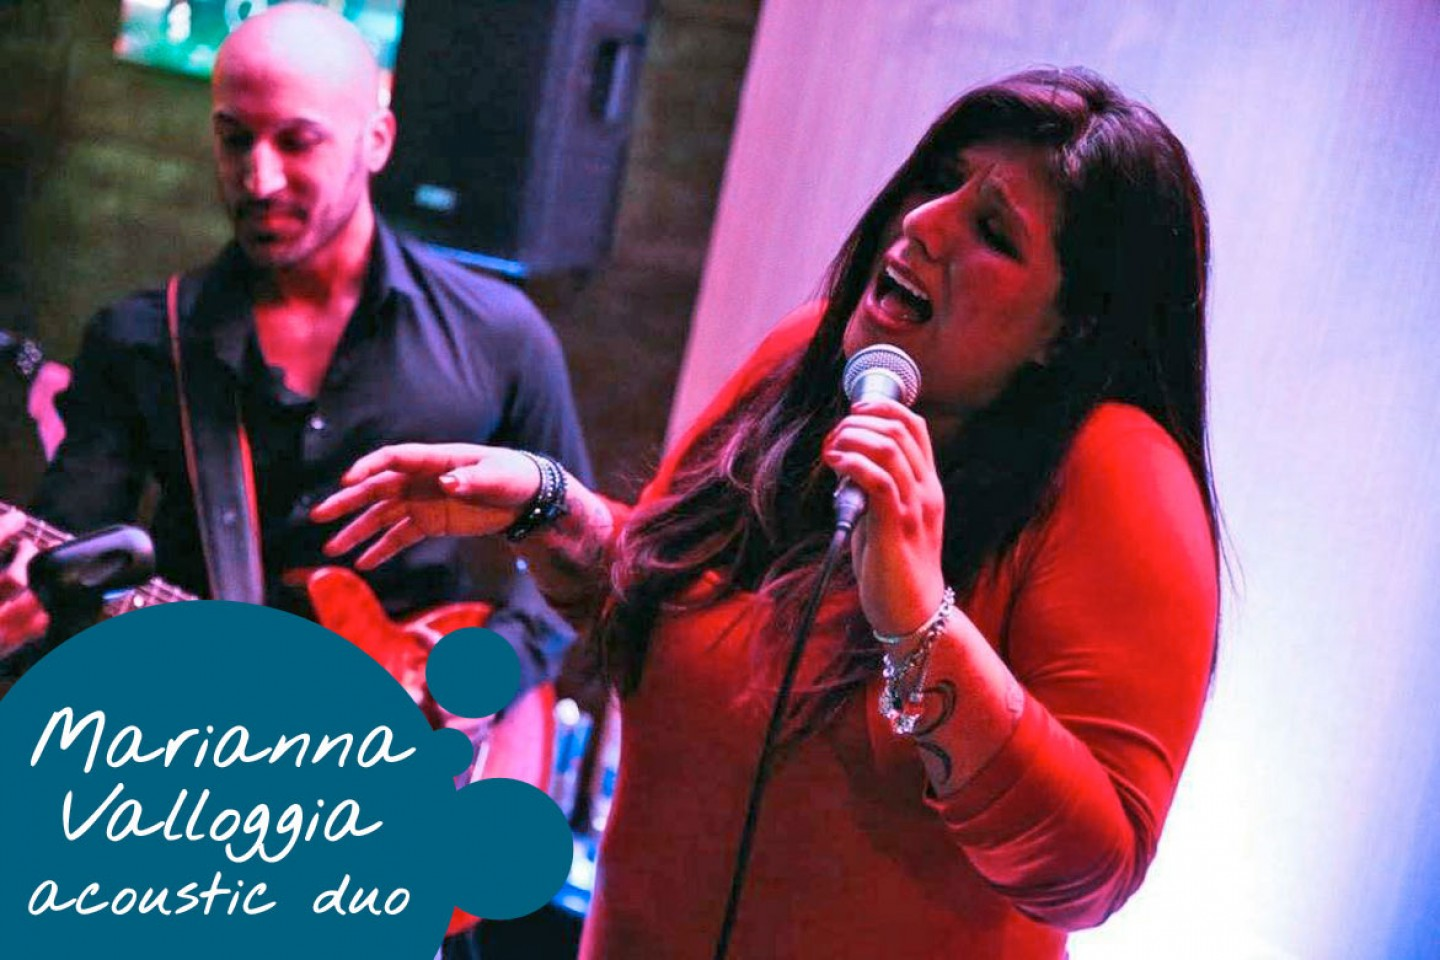 marianna-valloggia-acoustic-duo-home